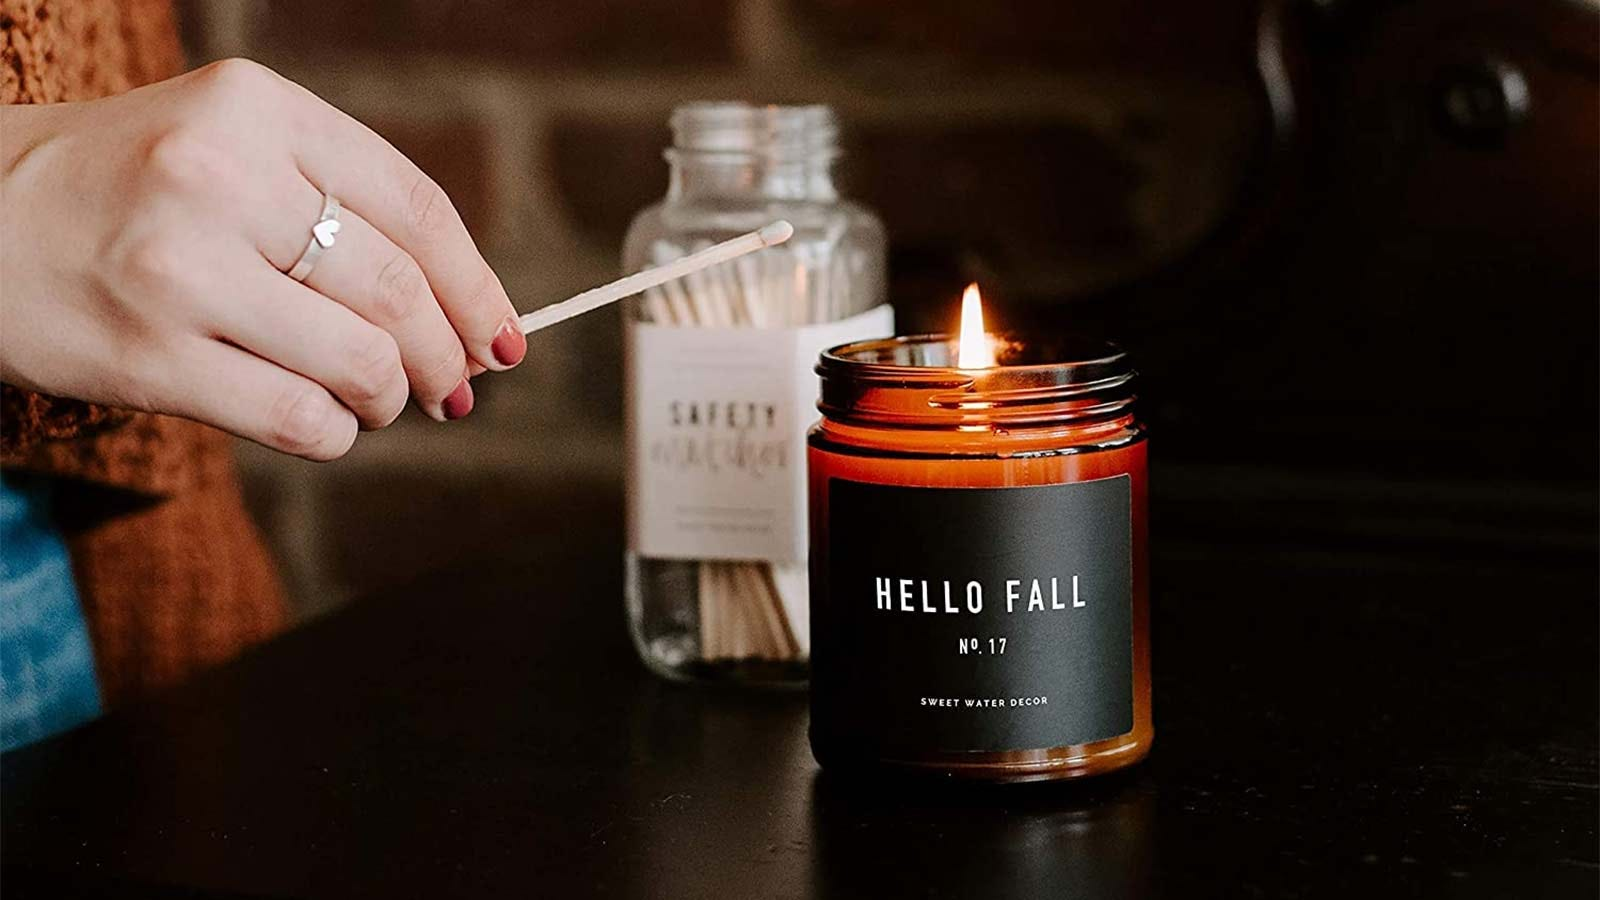 A woman's hand lighting a Sweet Water Decor Hello Fall candle.